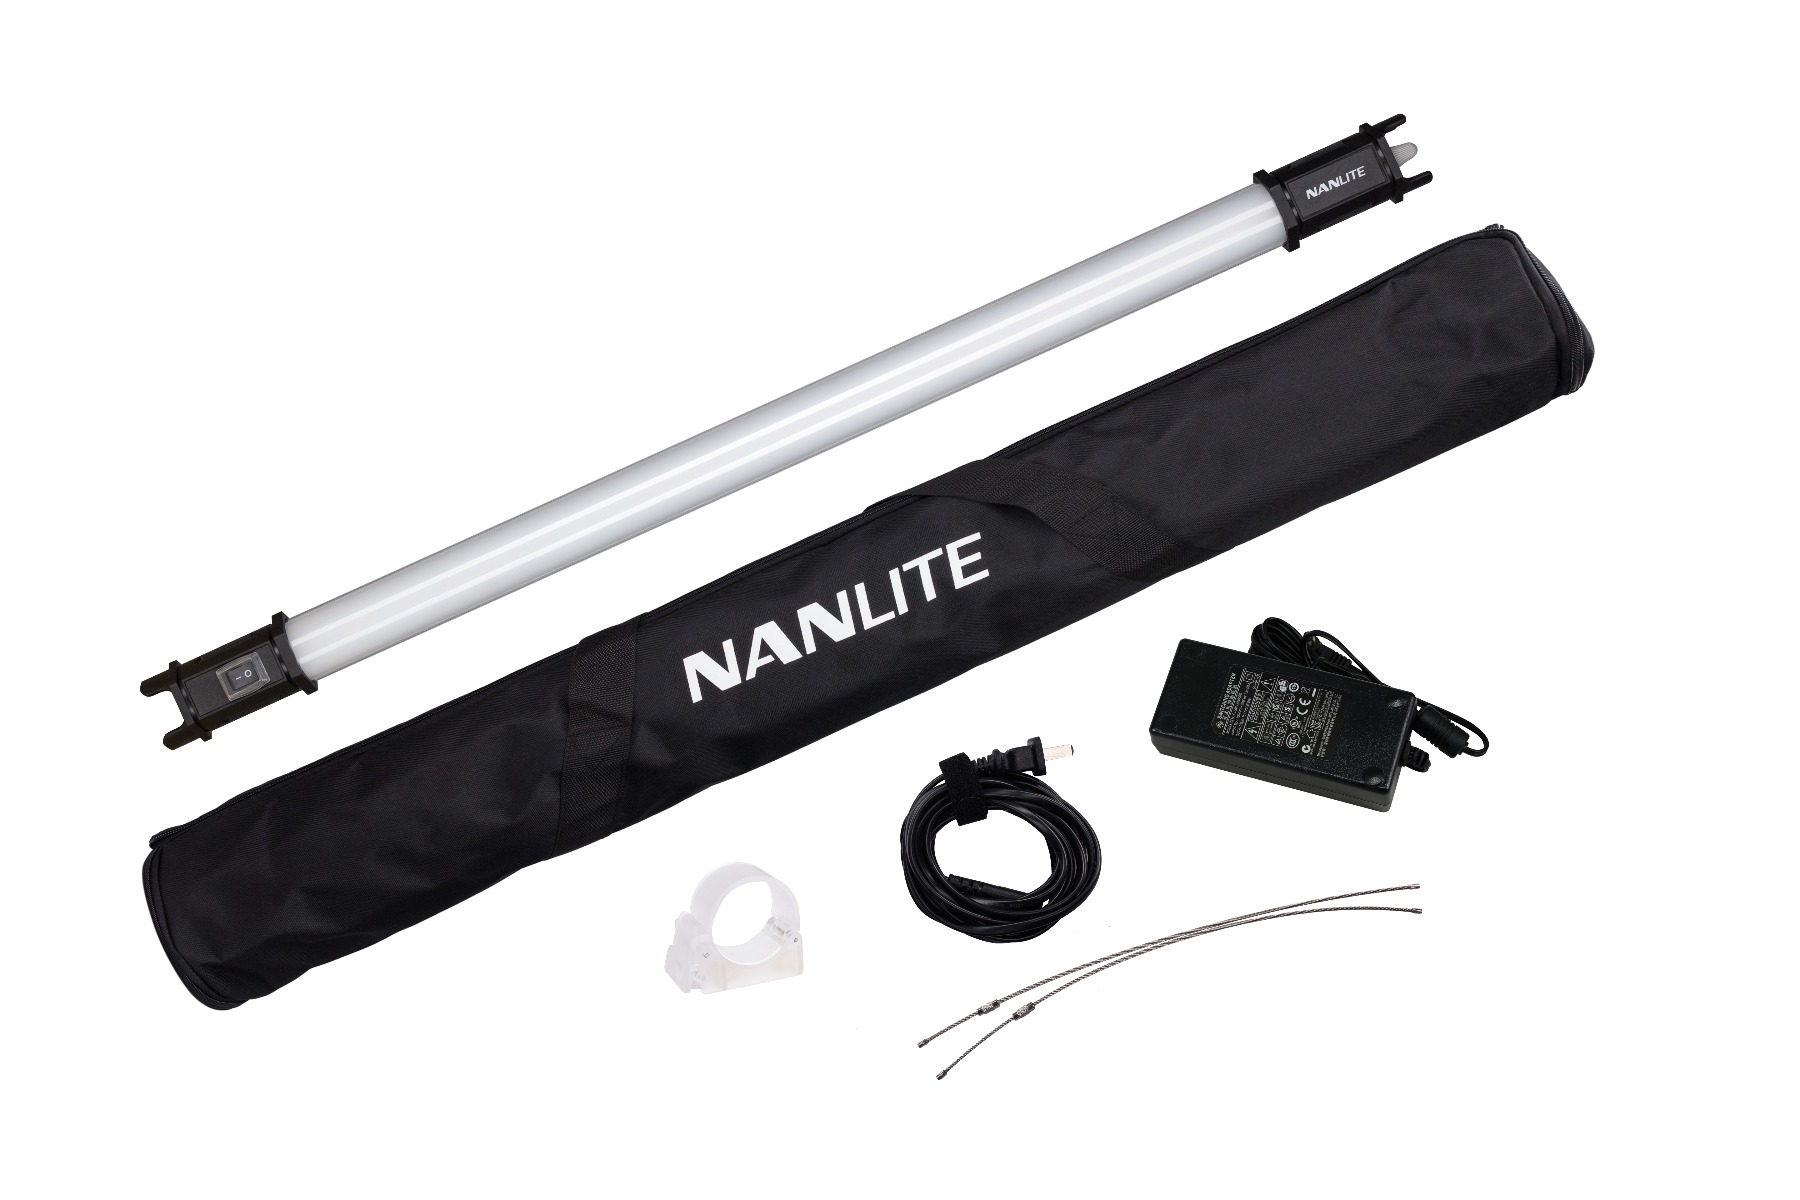 NANLITE PAVOTUBE 15C 2' RGBW LED TUBE 2700K-7500K